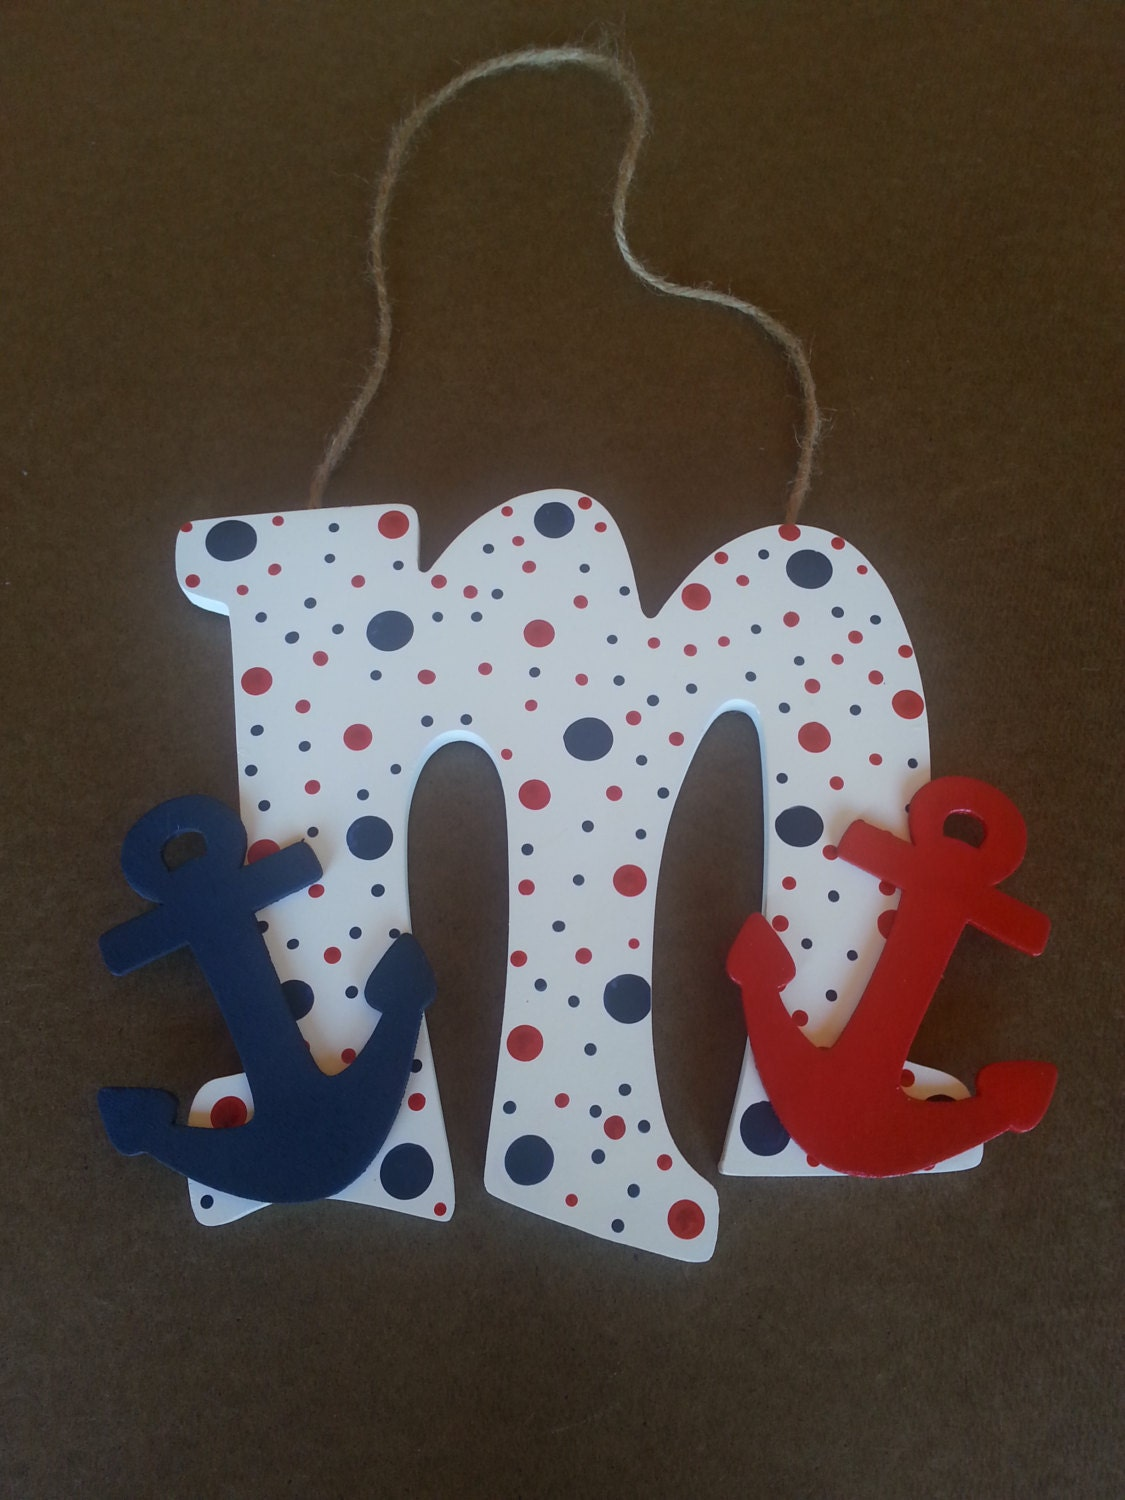 Painted wooden letter anchor decor hand painted letter for Letter n decorations